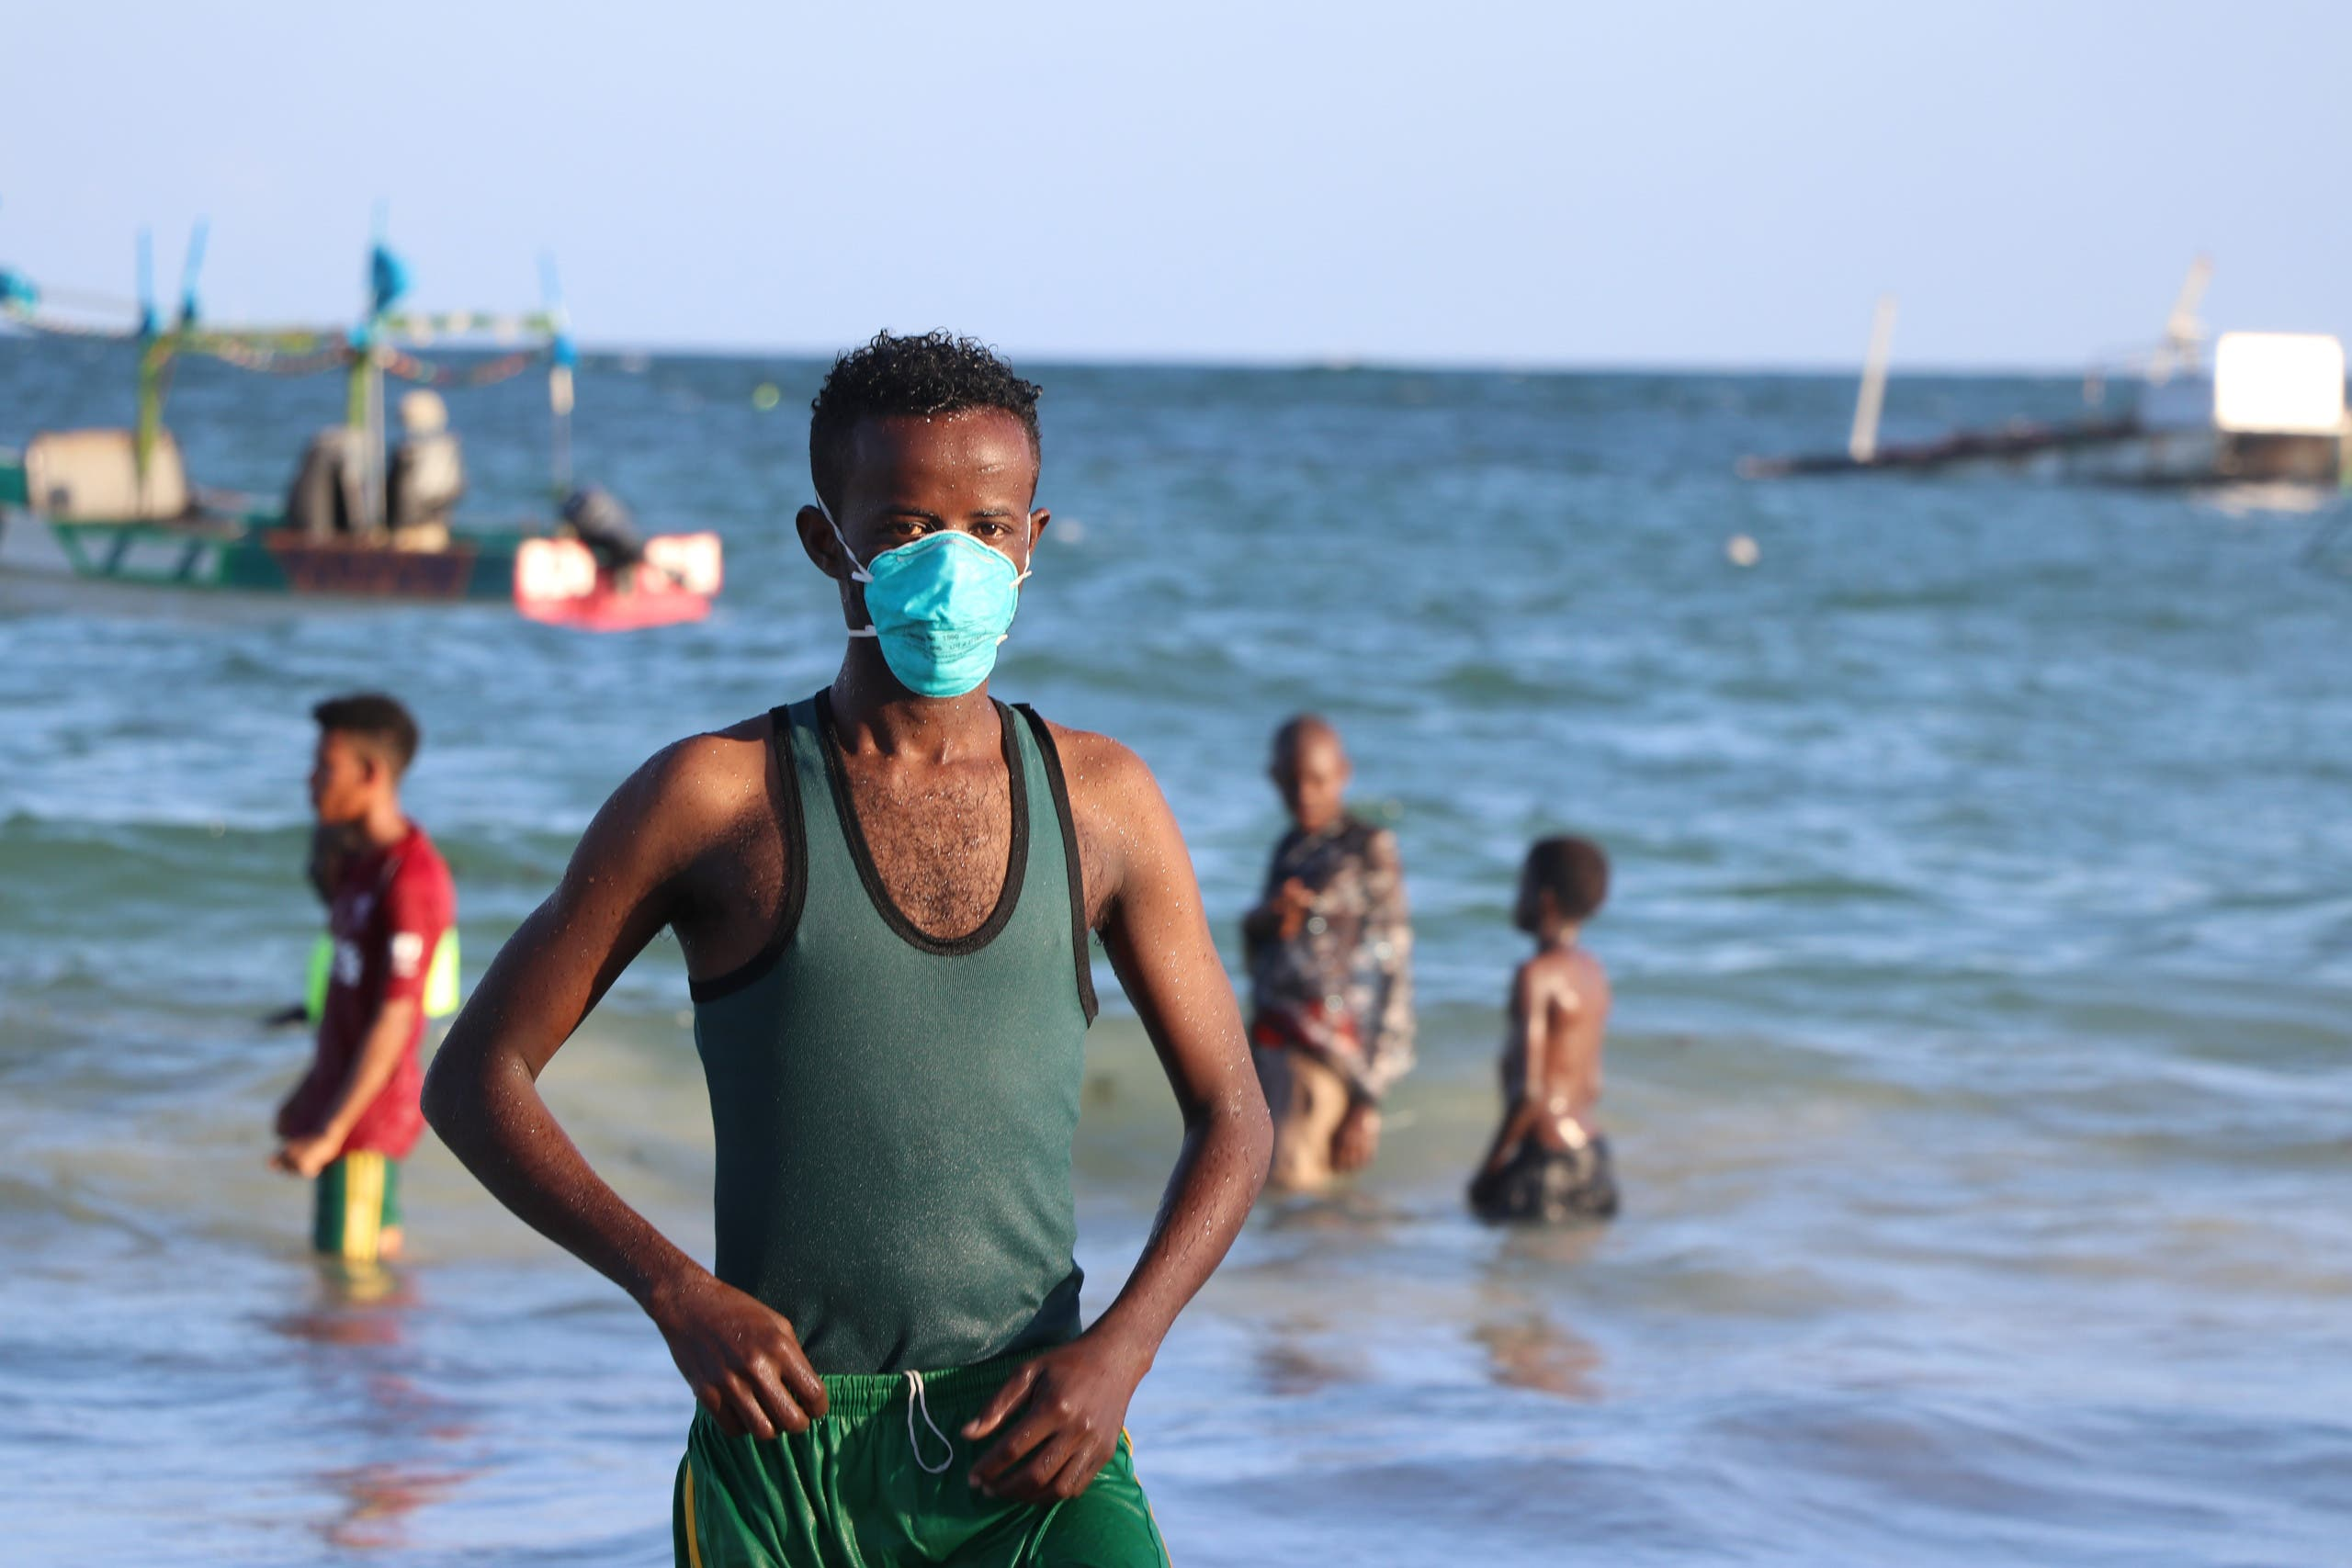 A man wears a mask as a protective measure to curb the coronavirus while bathing at Lido beach in Mogadishu, Somalia, on April 4, 2020. (AFP)